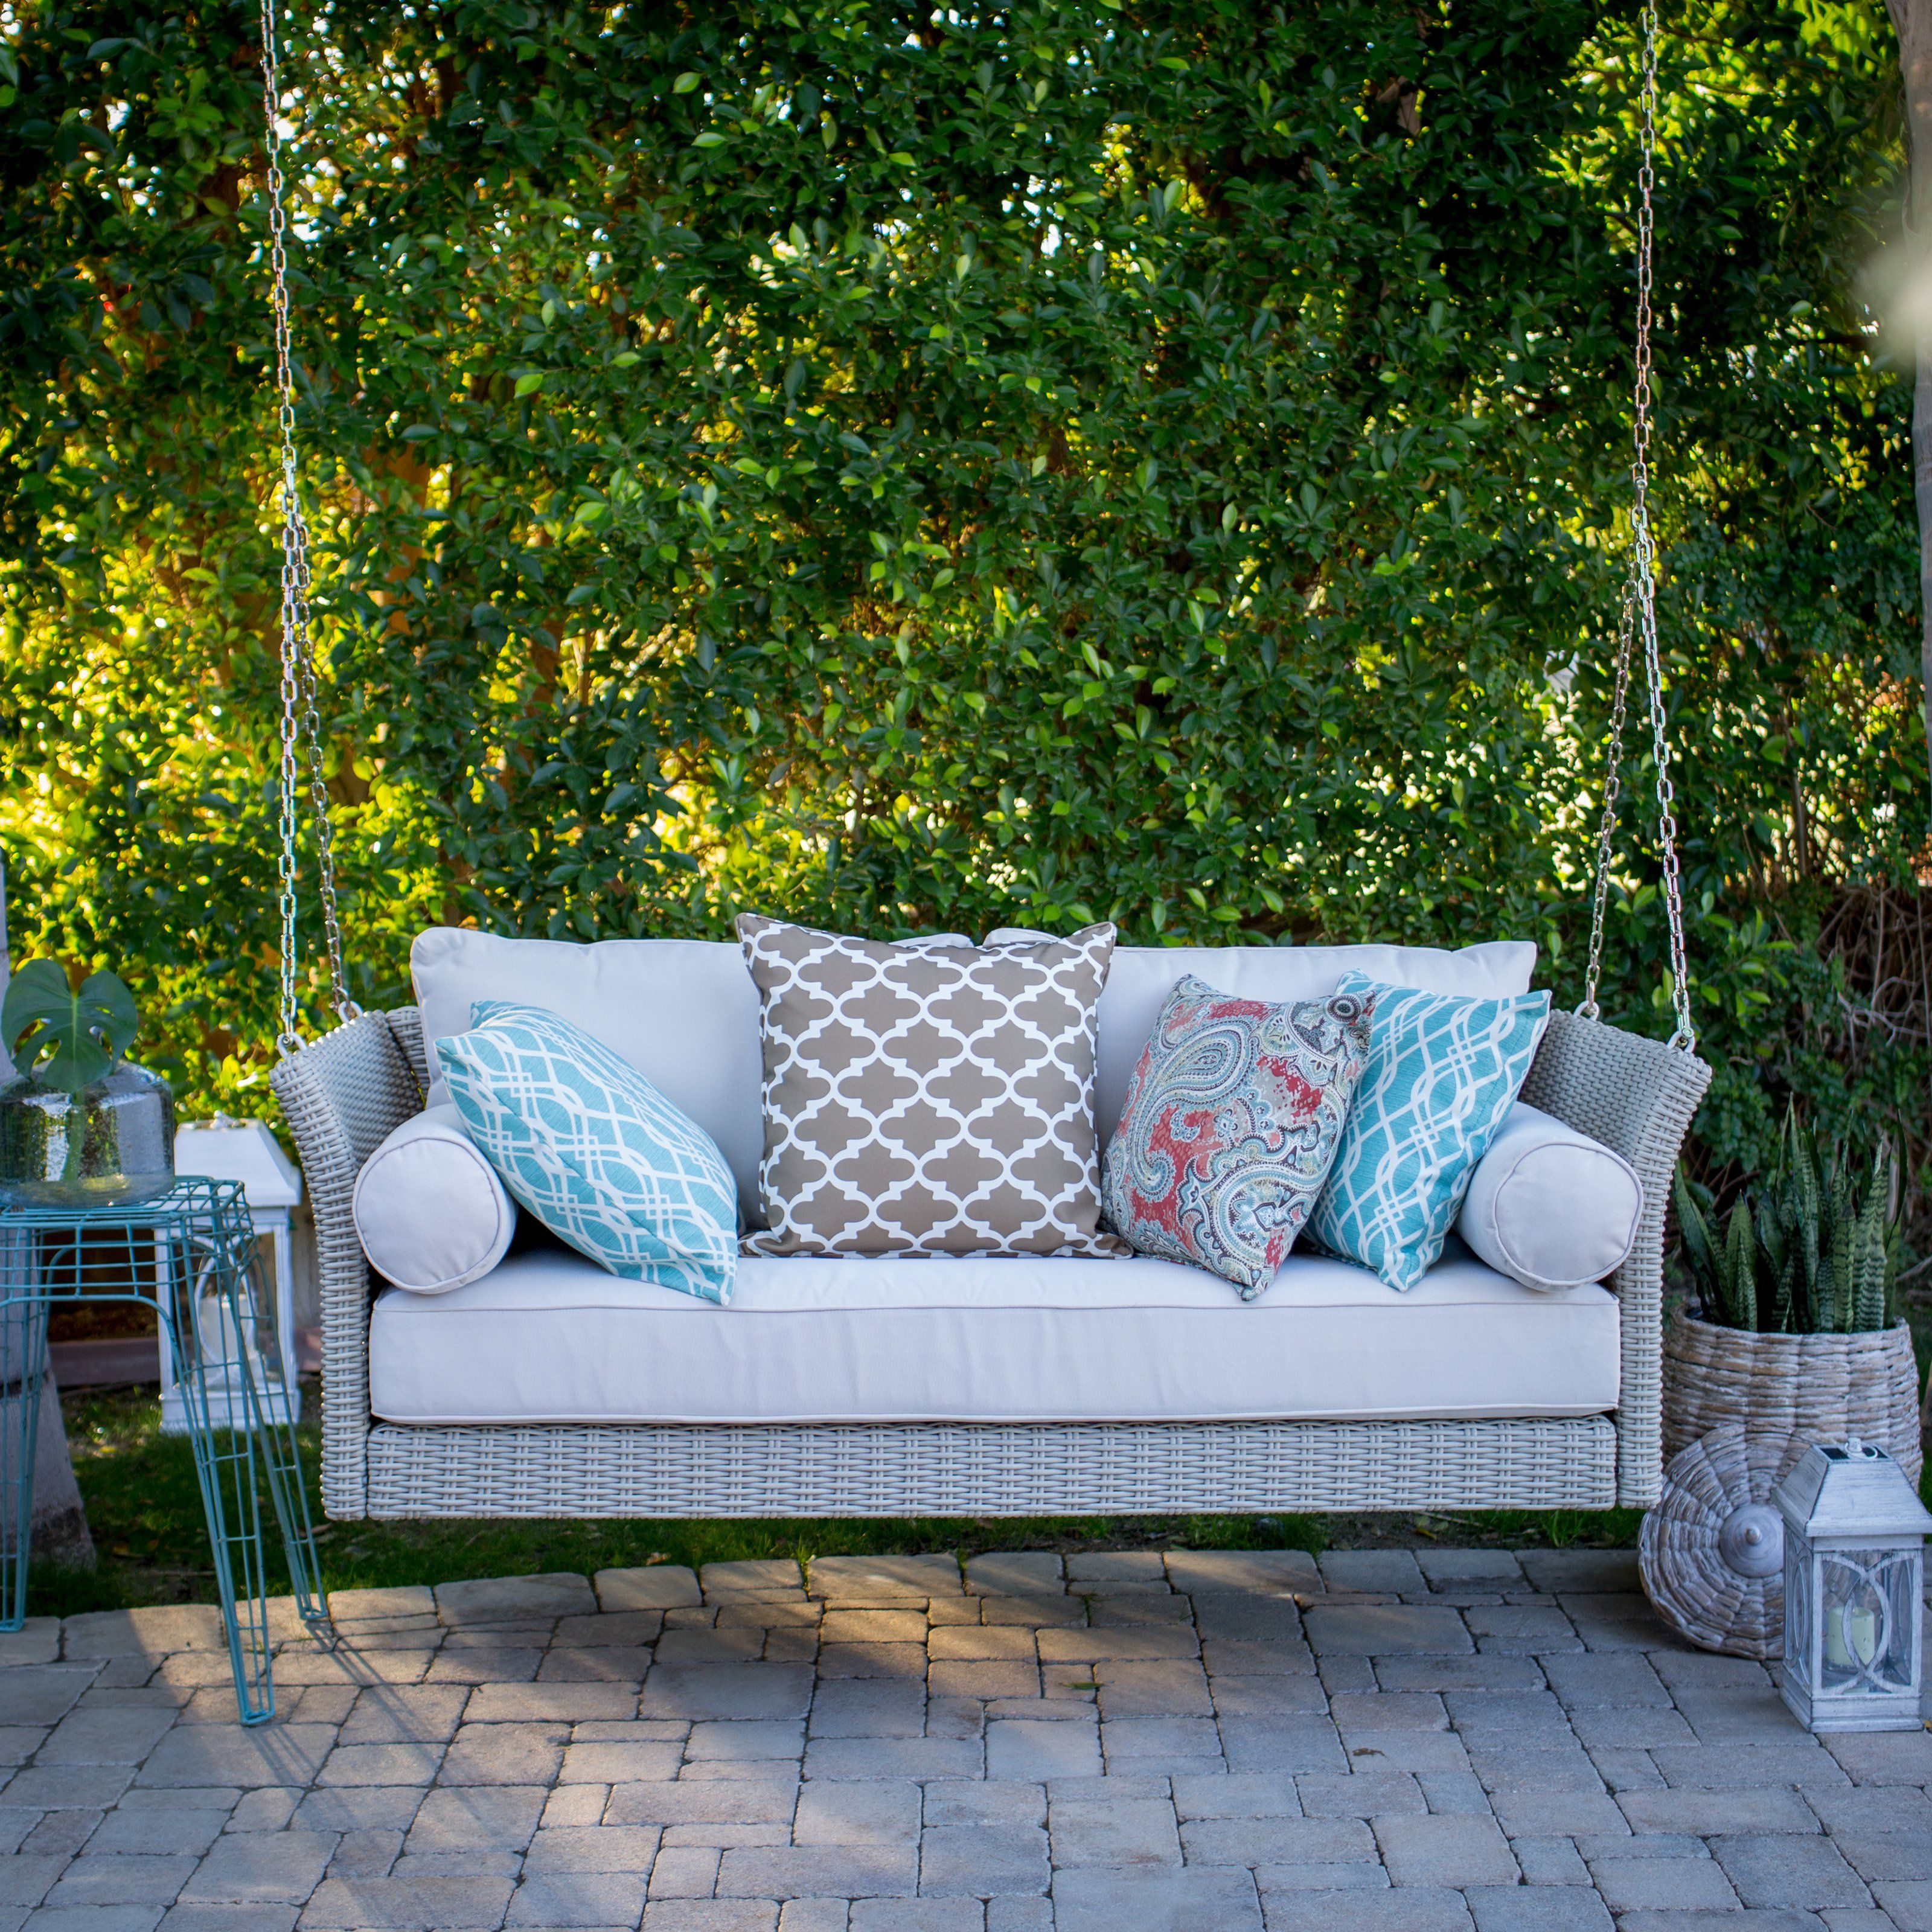 Belham Living Bellevue Deep Seating All Weather Wicker Porch Swing Bed With Cushion Porch Swing Bed Wicker Porch Swing Porch Swing